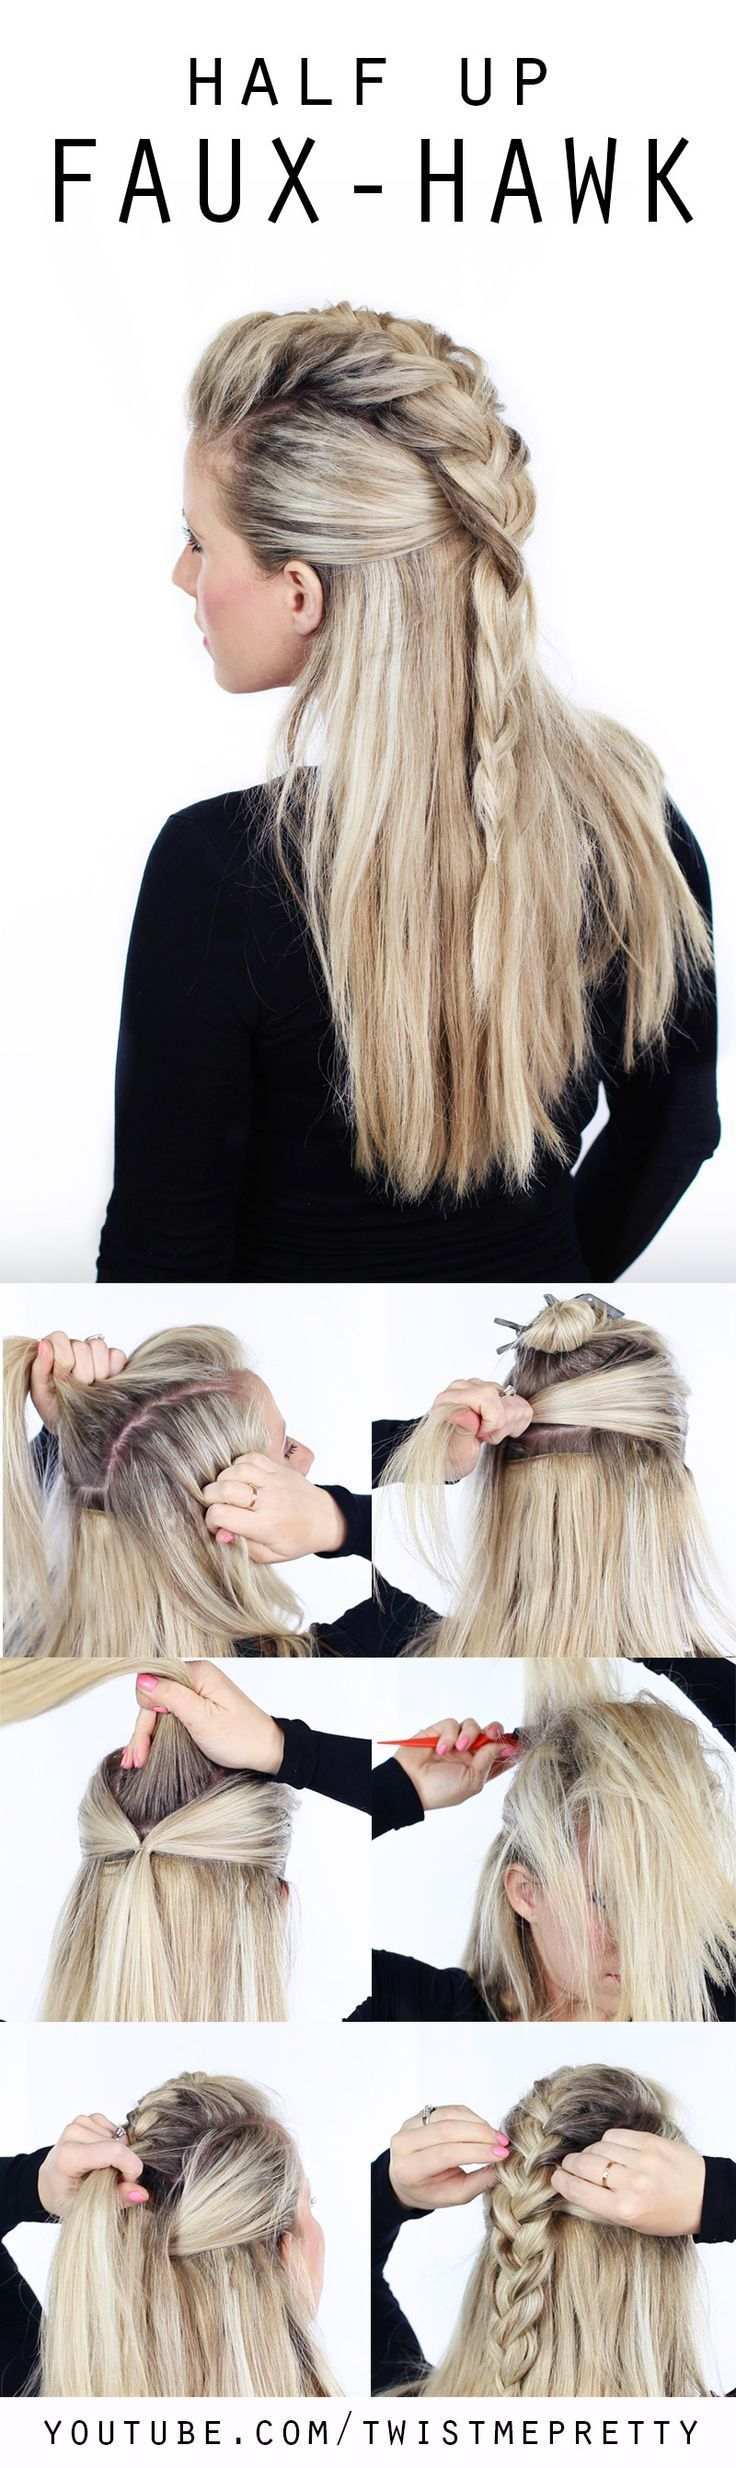 How to Tame Your Hair: Summer Hair Tutorials | Pretty Designs